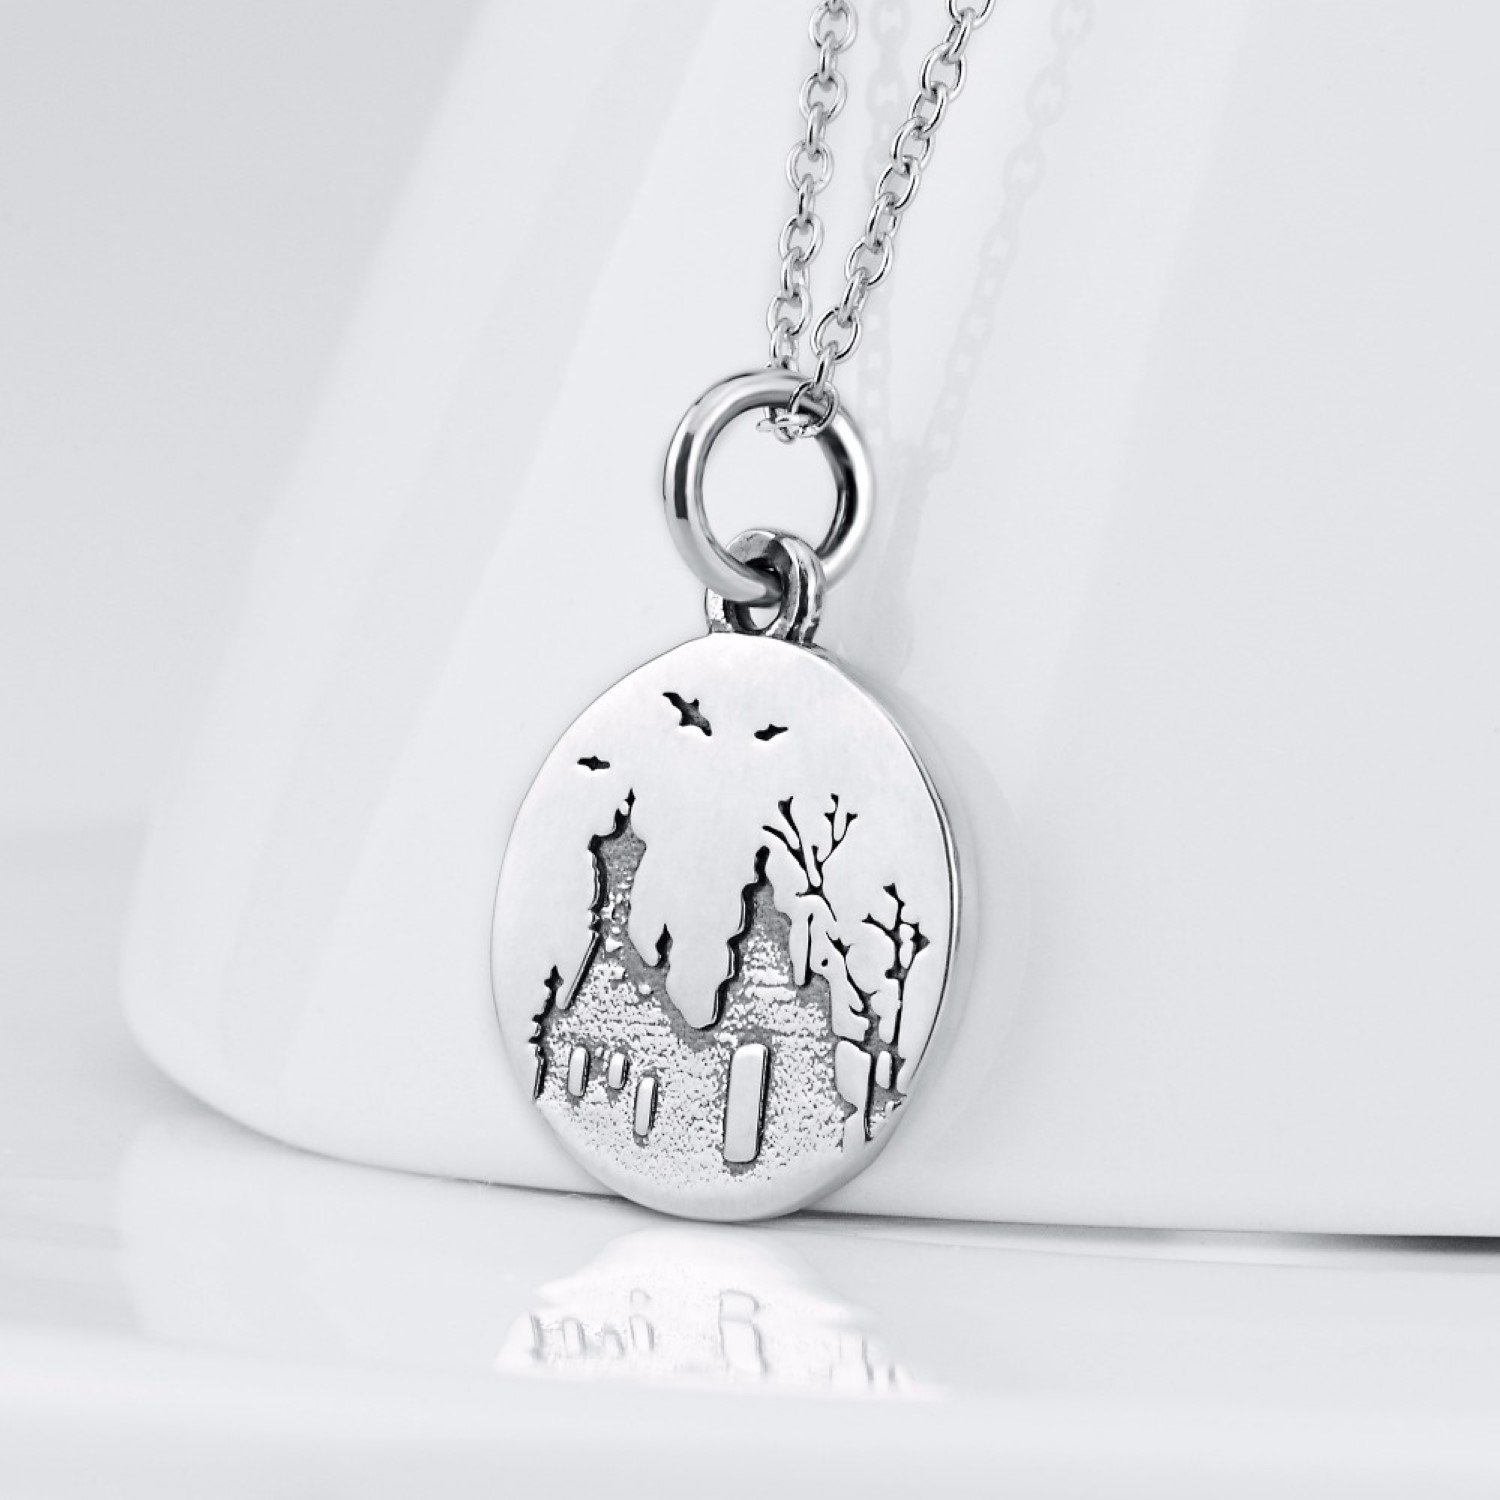 CS-DB Round Plain Pendants Silver Necklaces Chain for Jewelry